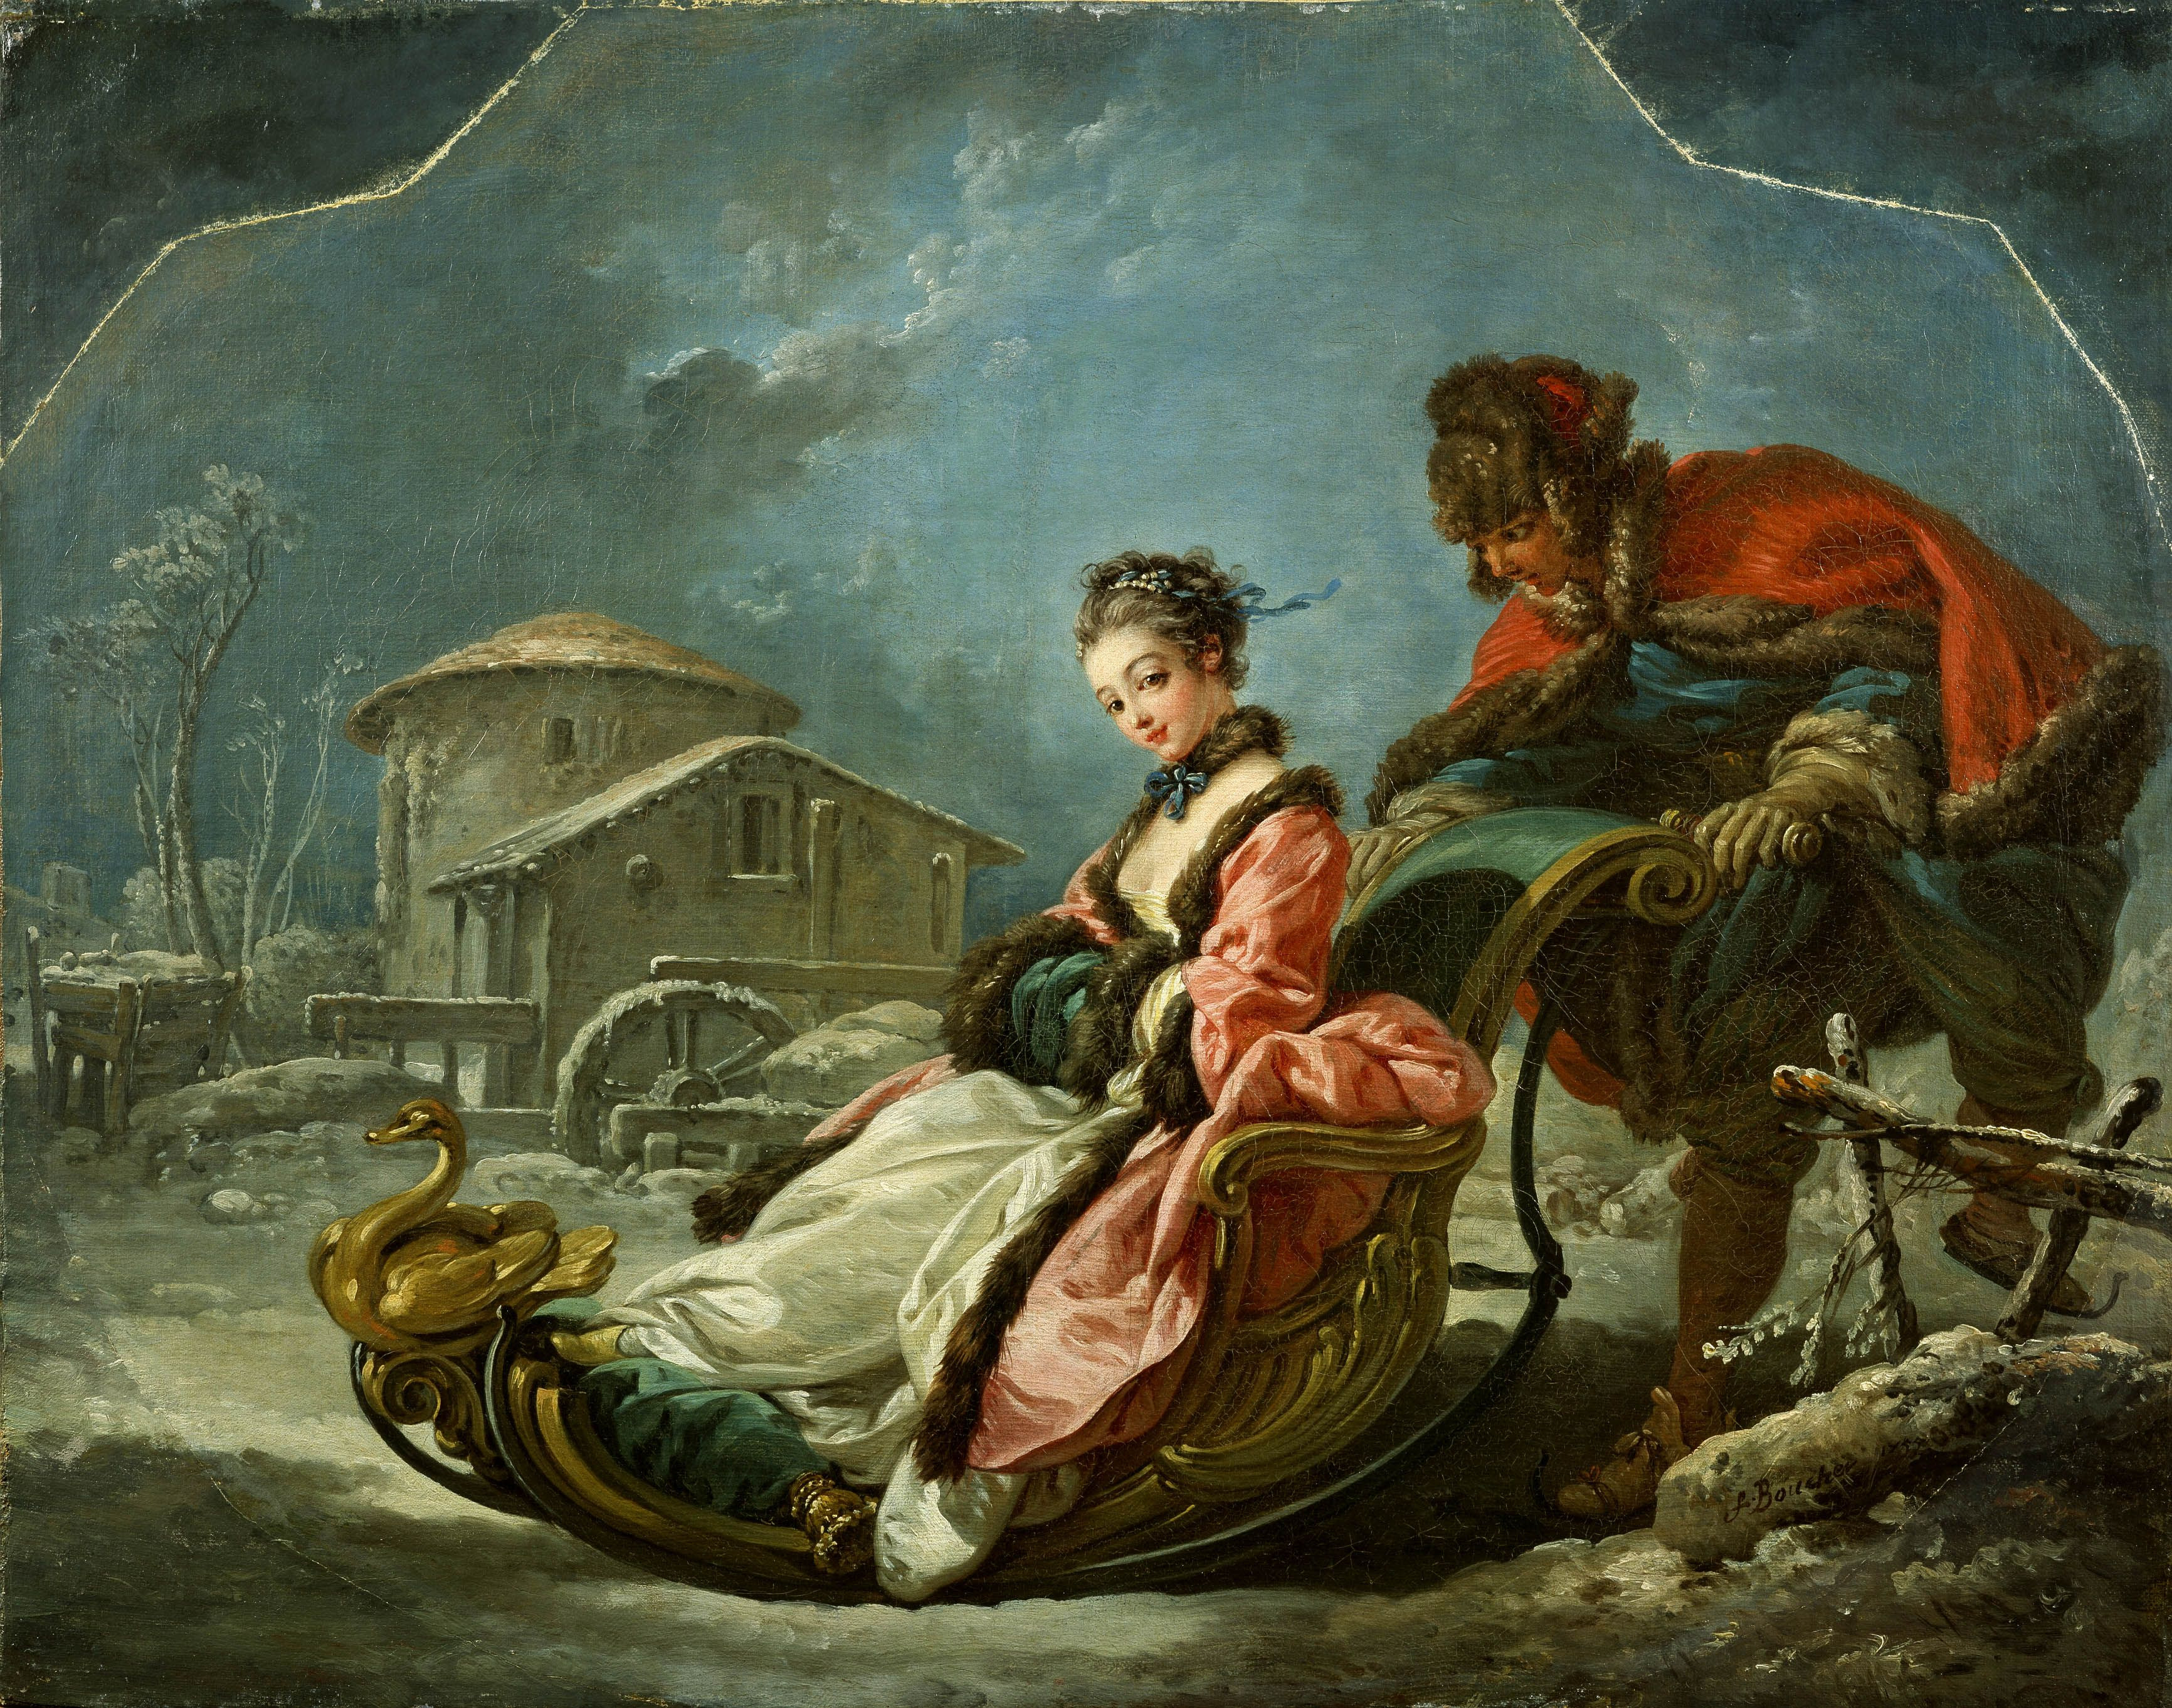 Four Seasons: Winter by Francois Boucher (1755)